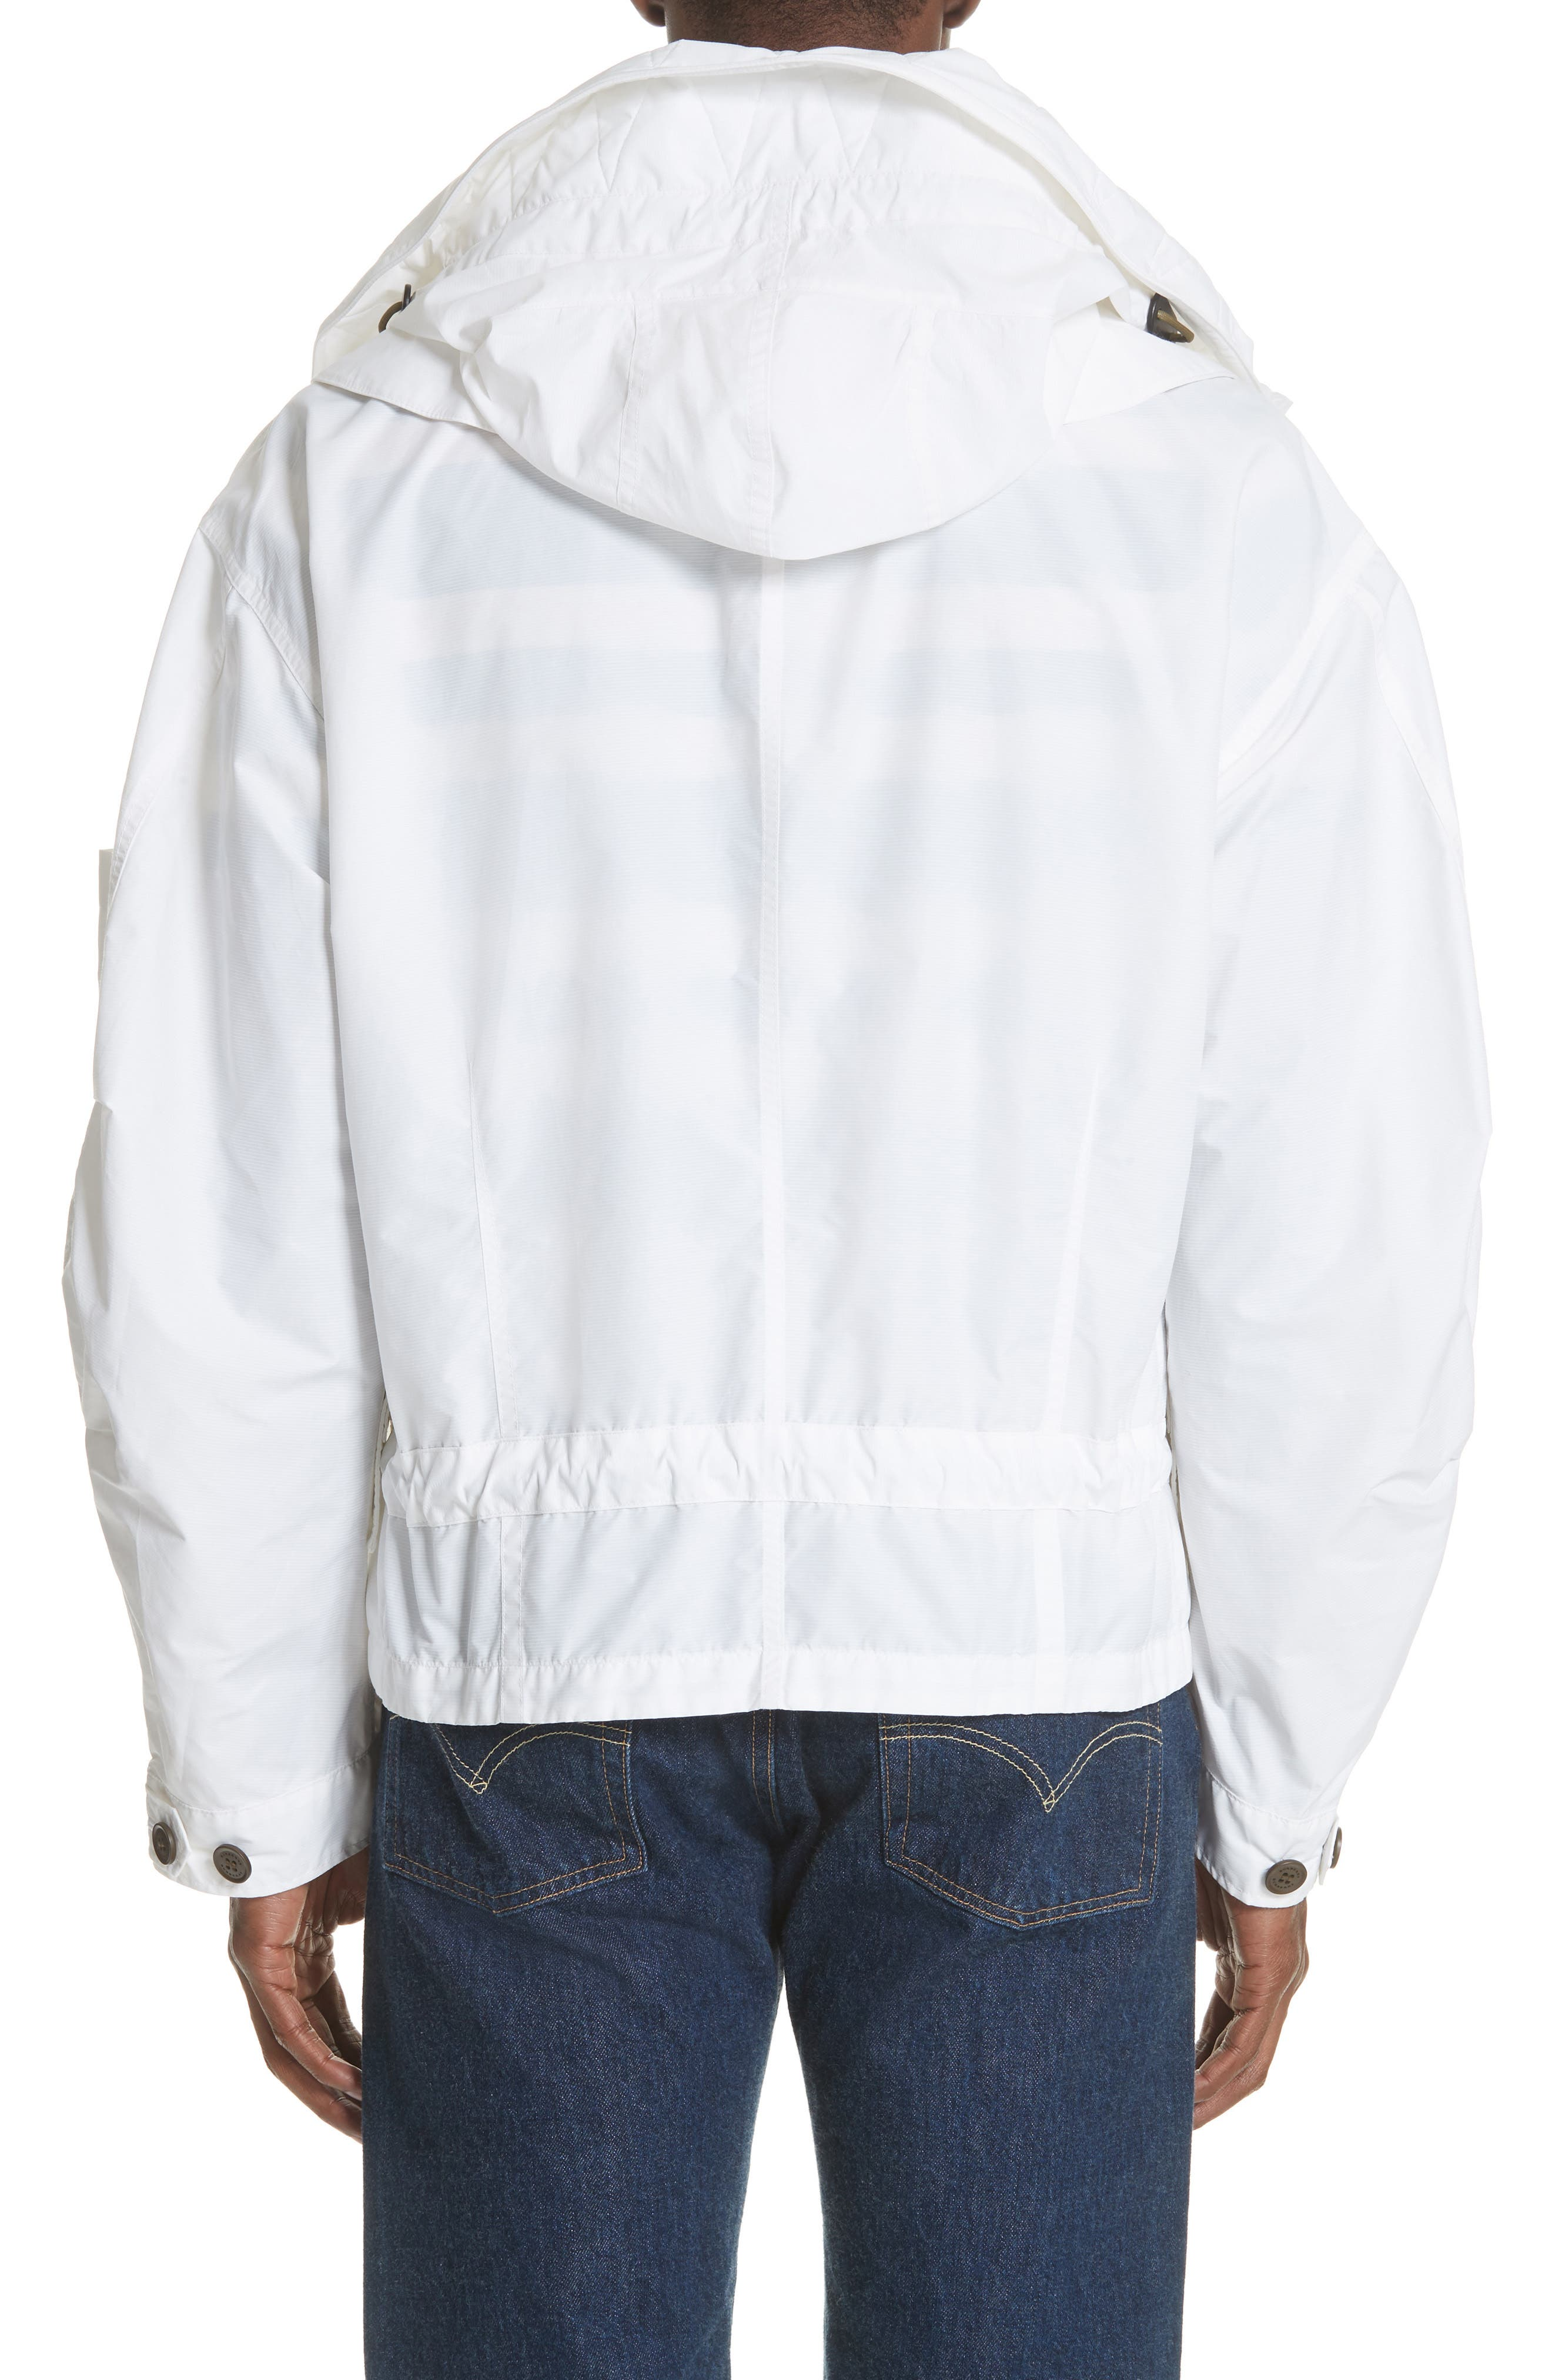 Shenwood Tech Jacket with Detachable Hood,                             Alternate thumbnail 2, color,                             White